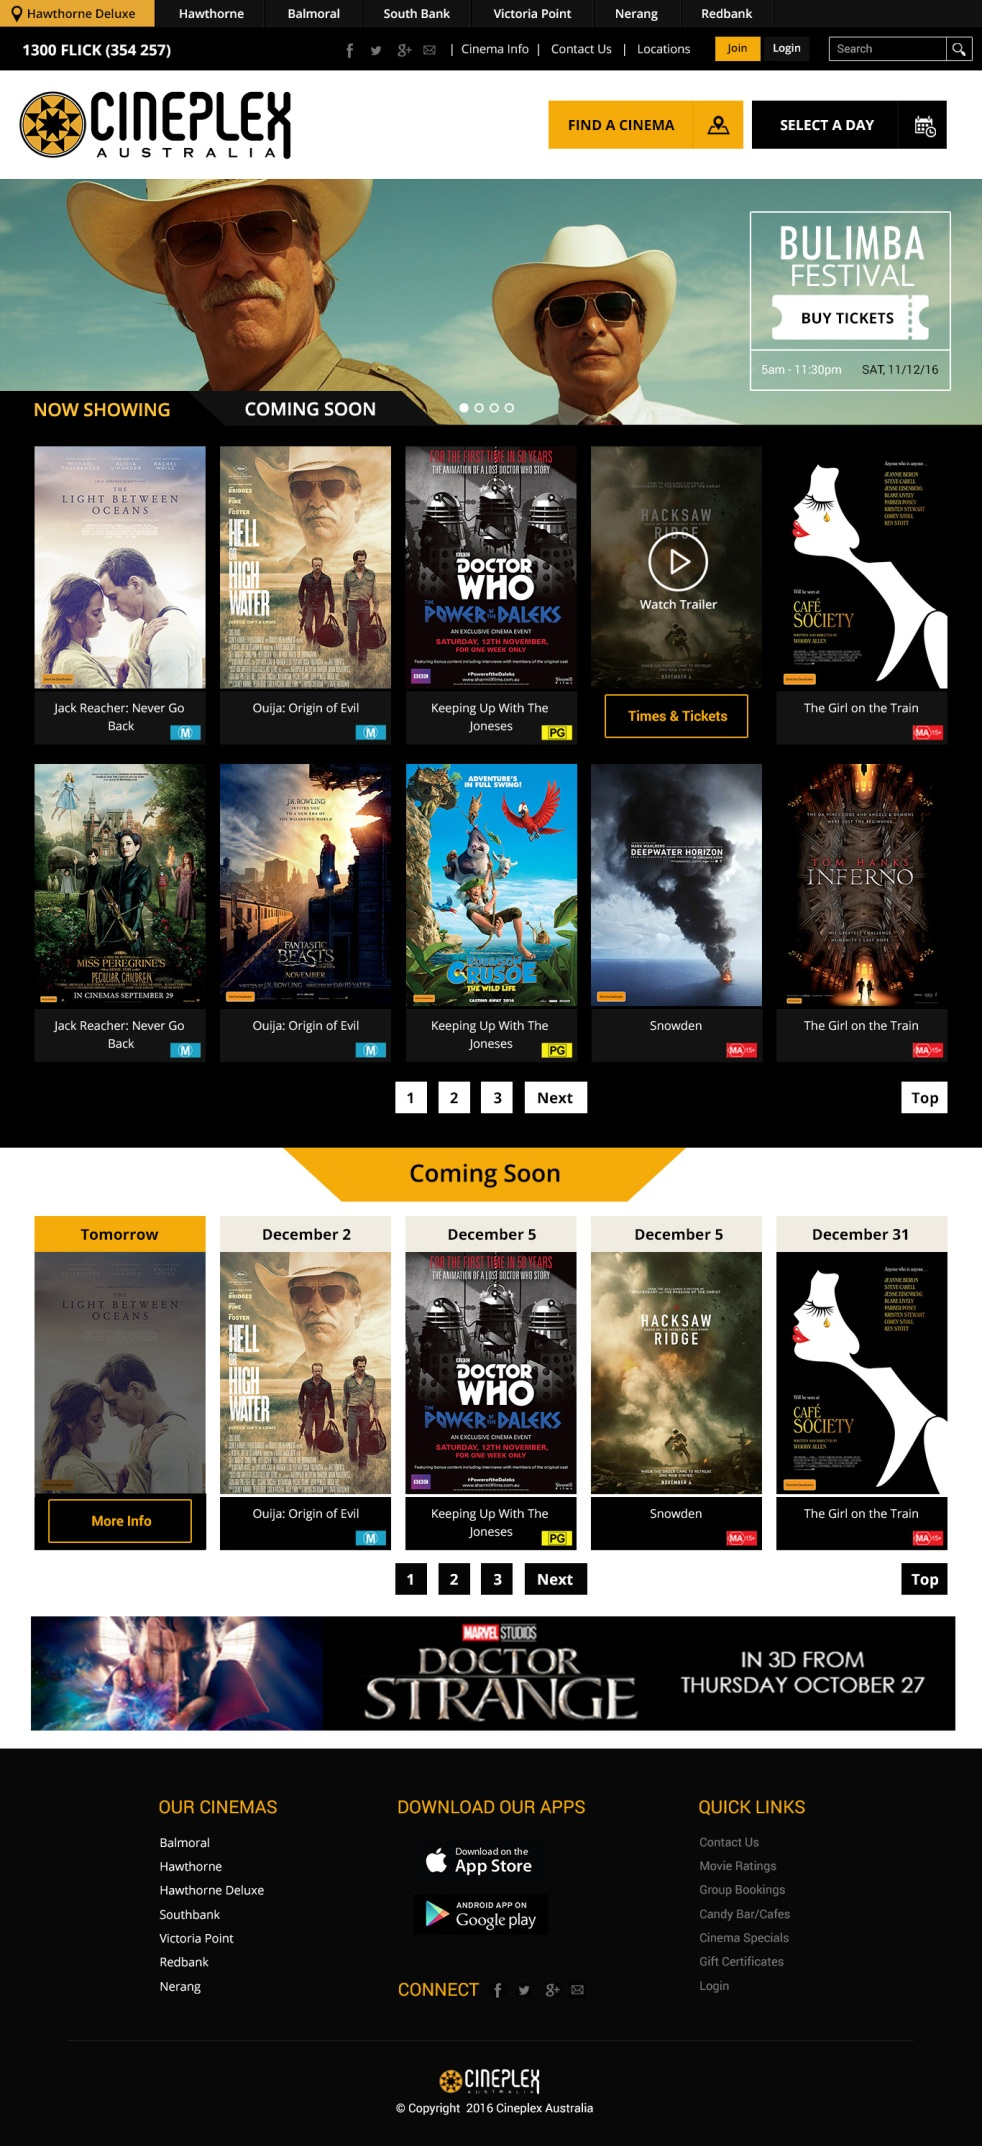 cineplex-homepage-1366x768